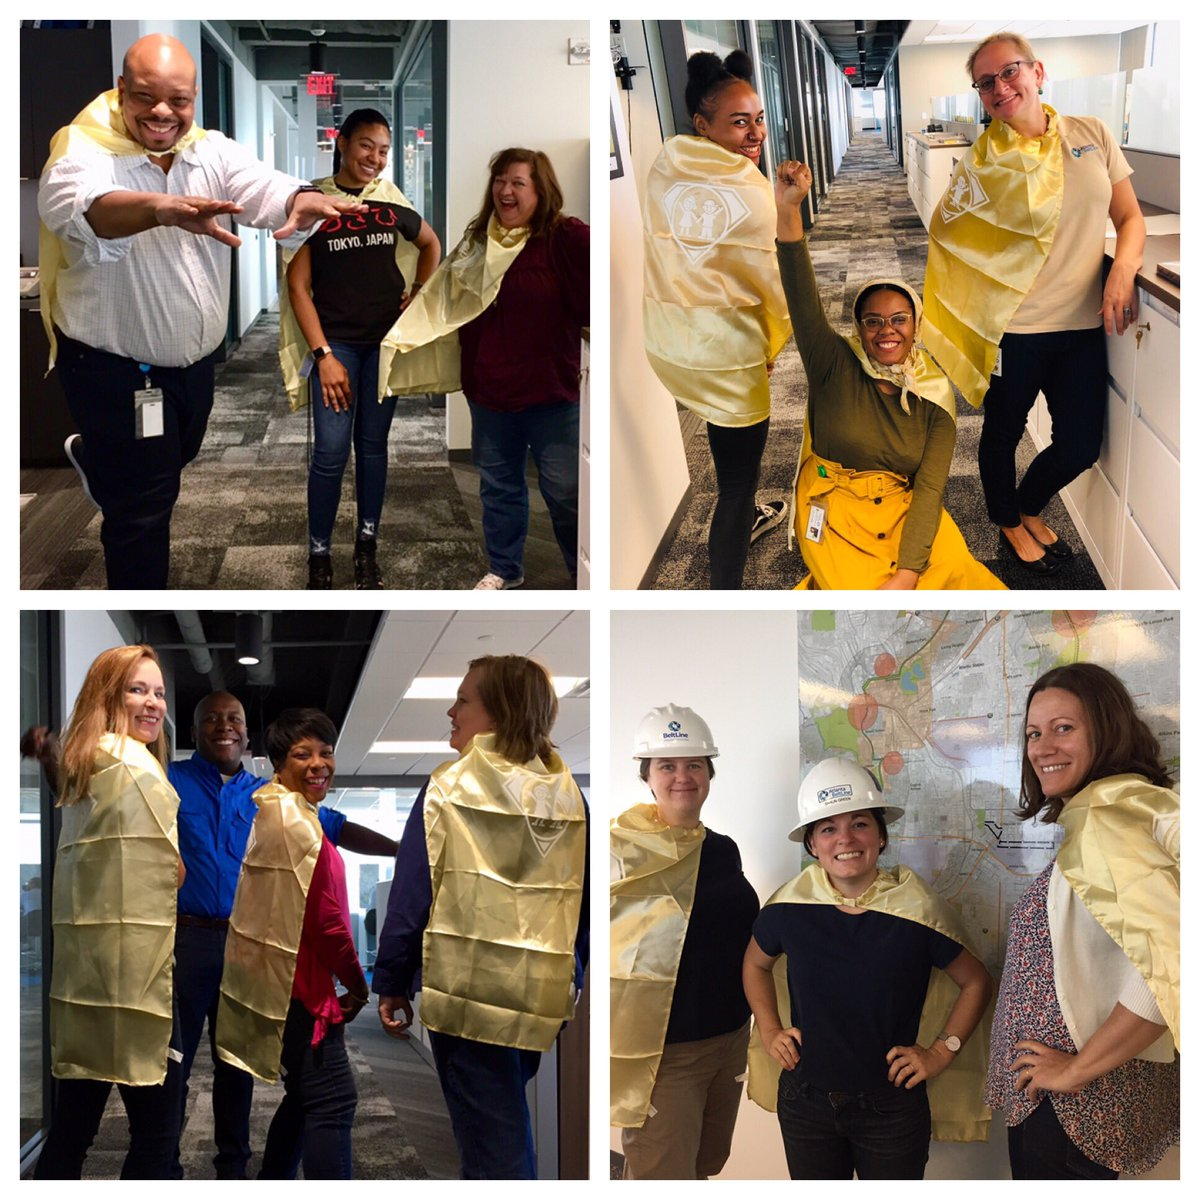 Happy #CapeDayATL to all of the superhero kids in the care of @childrensatl from all of us at the Atlanta BeltLine!